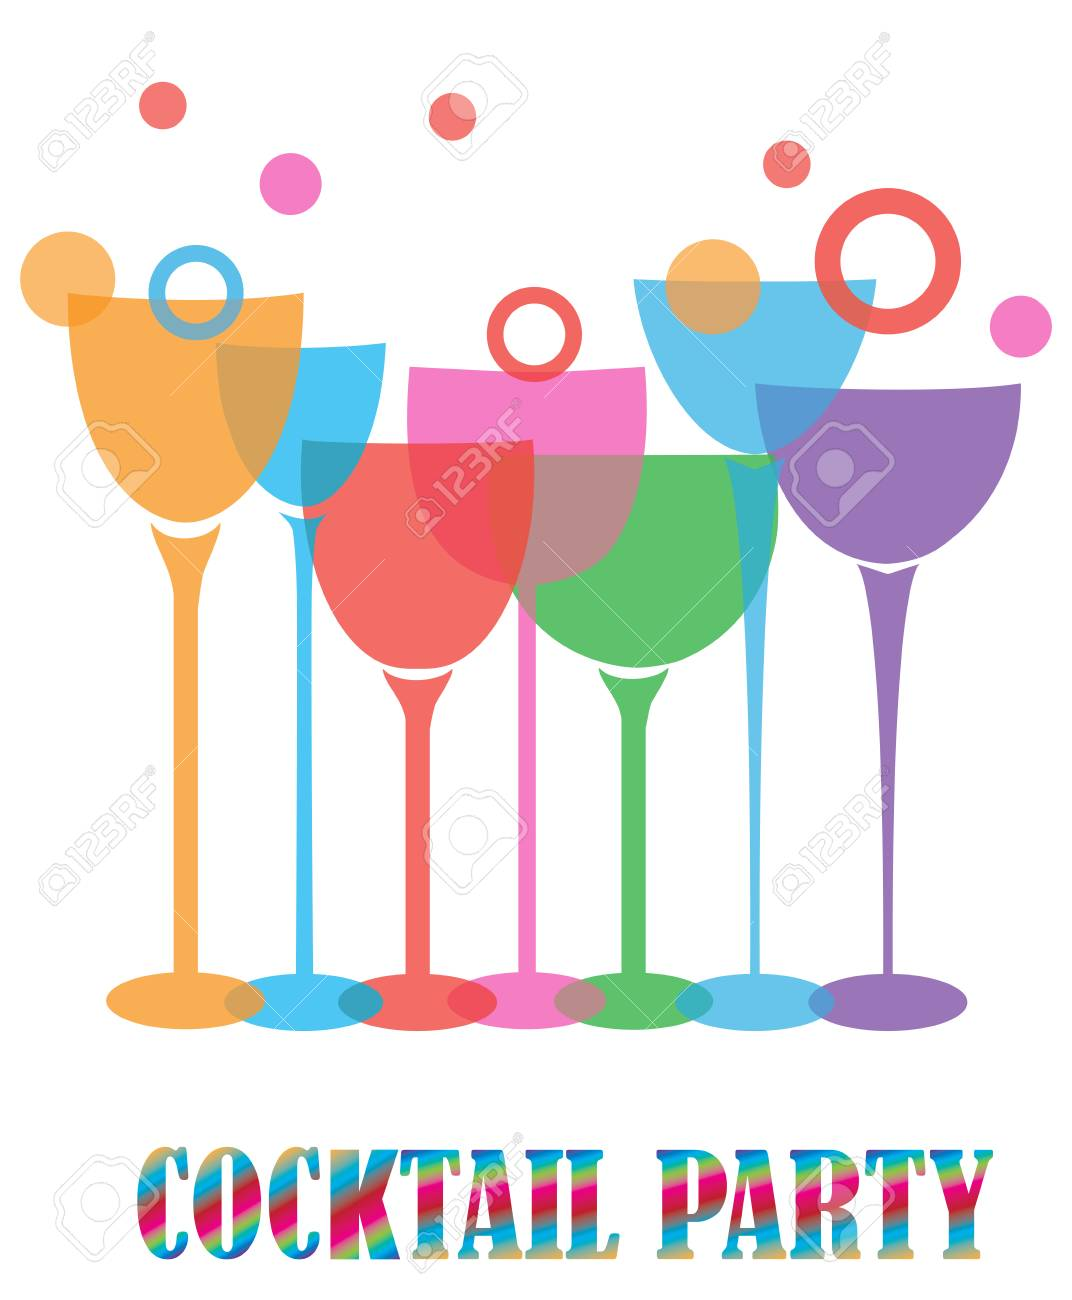 Vector illustration of cocktail party with wine glasses.